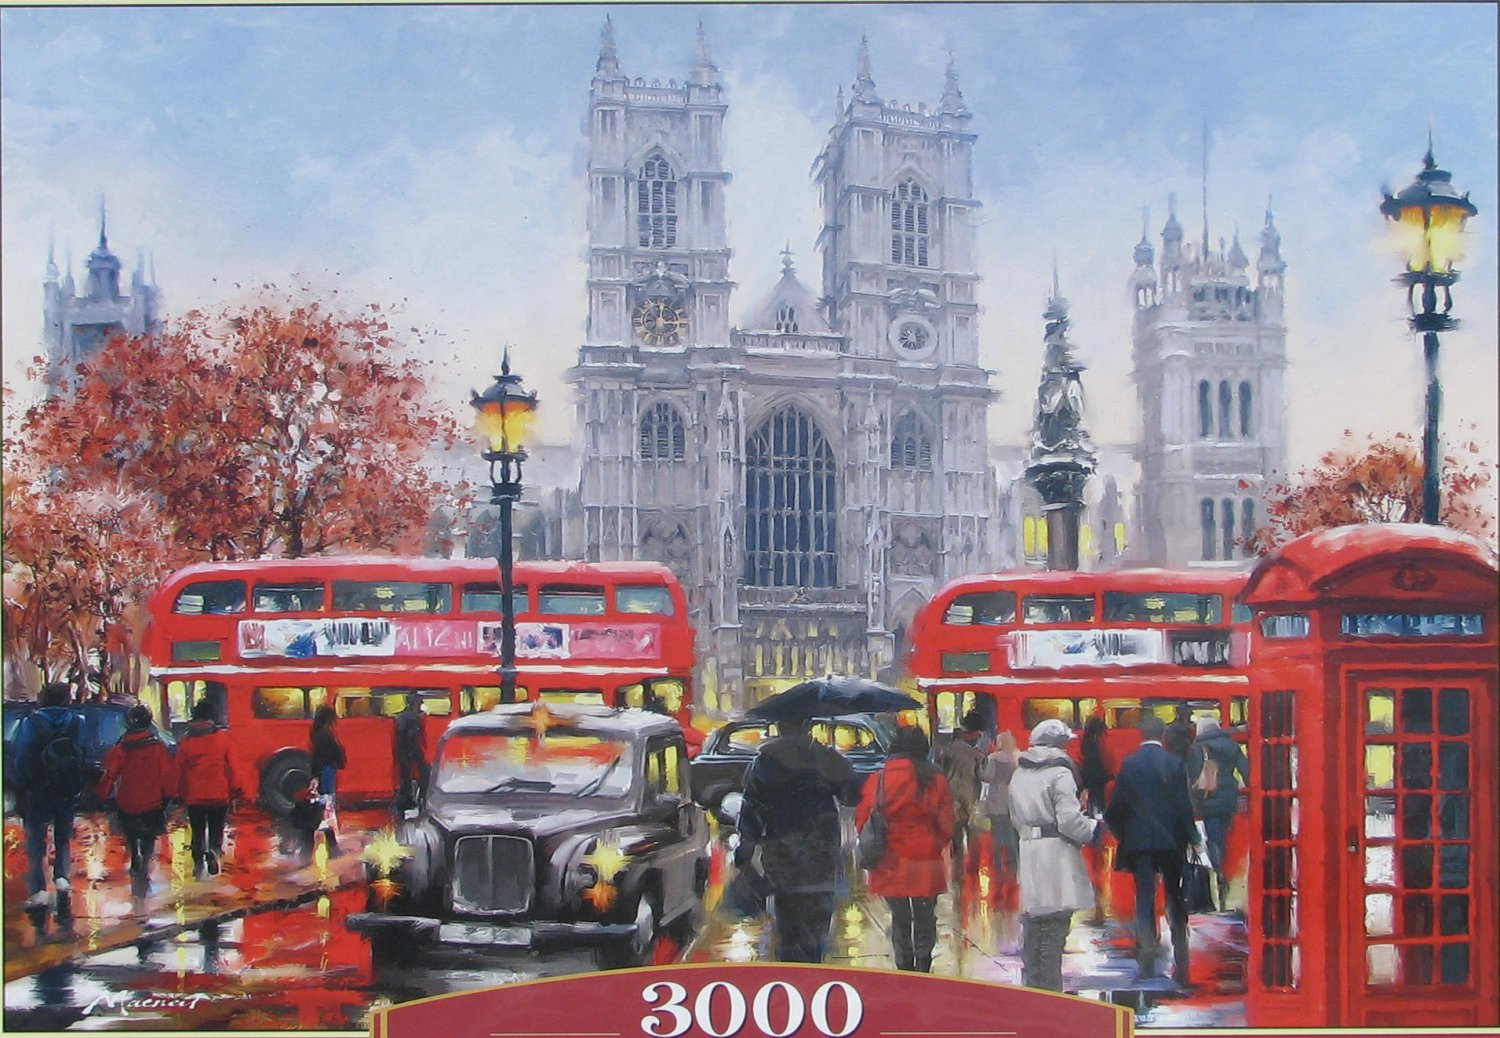 Castorland WESTMINSTER ABBEY 3000 pc Jigsaw Puzzle